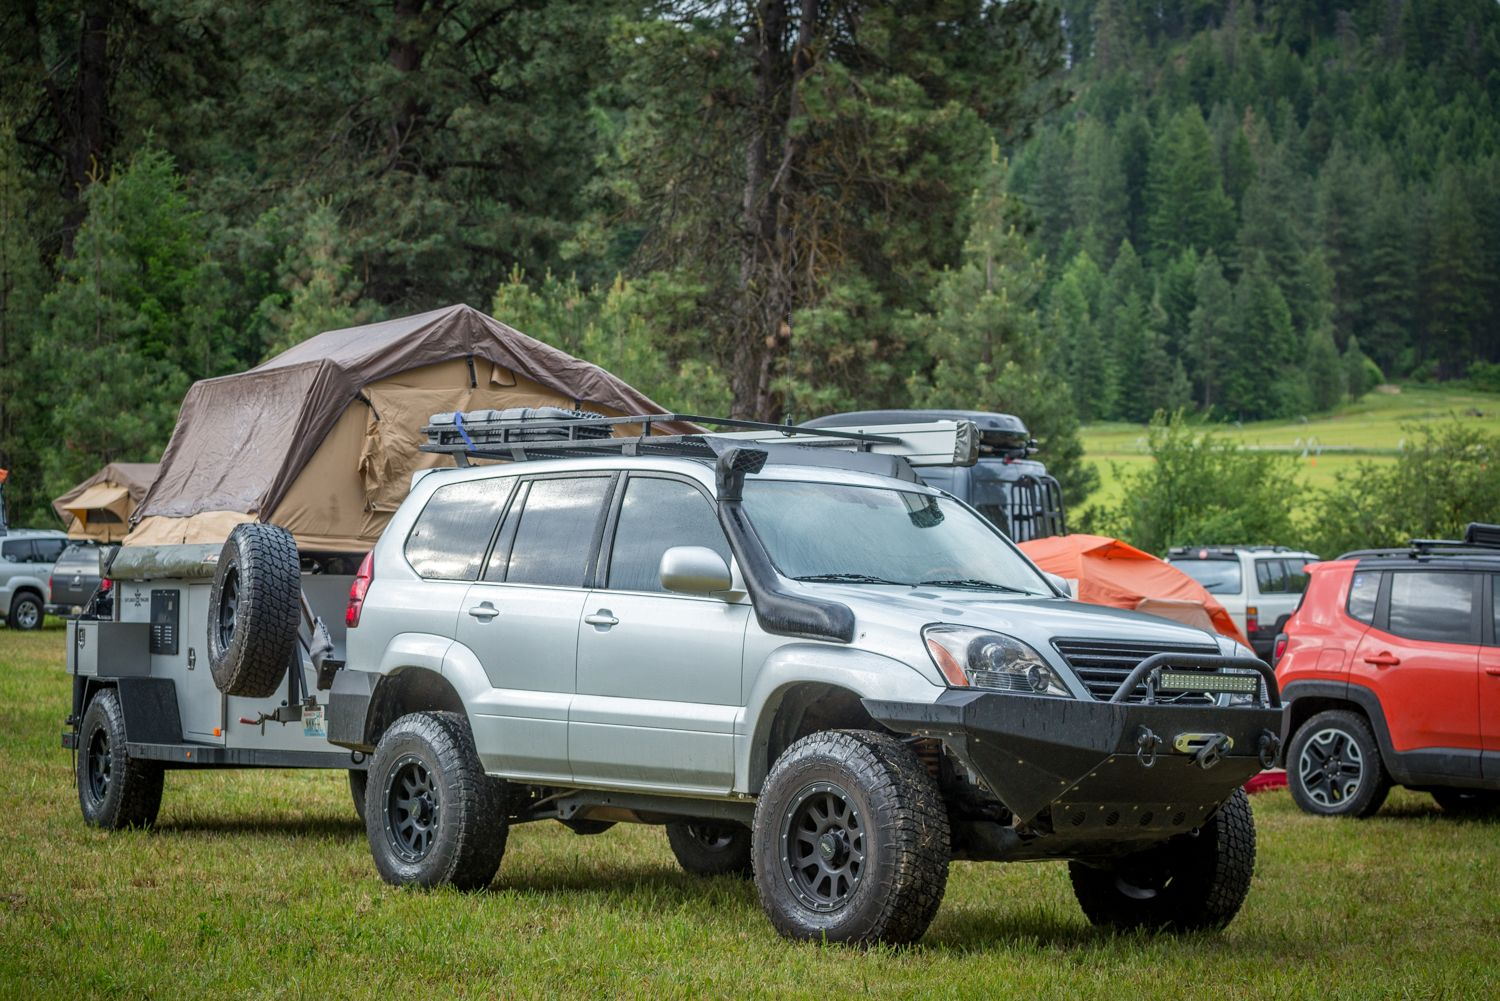 Best Trucks and SUVs Under $20,000 for Off-Road and